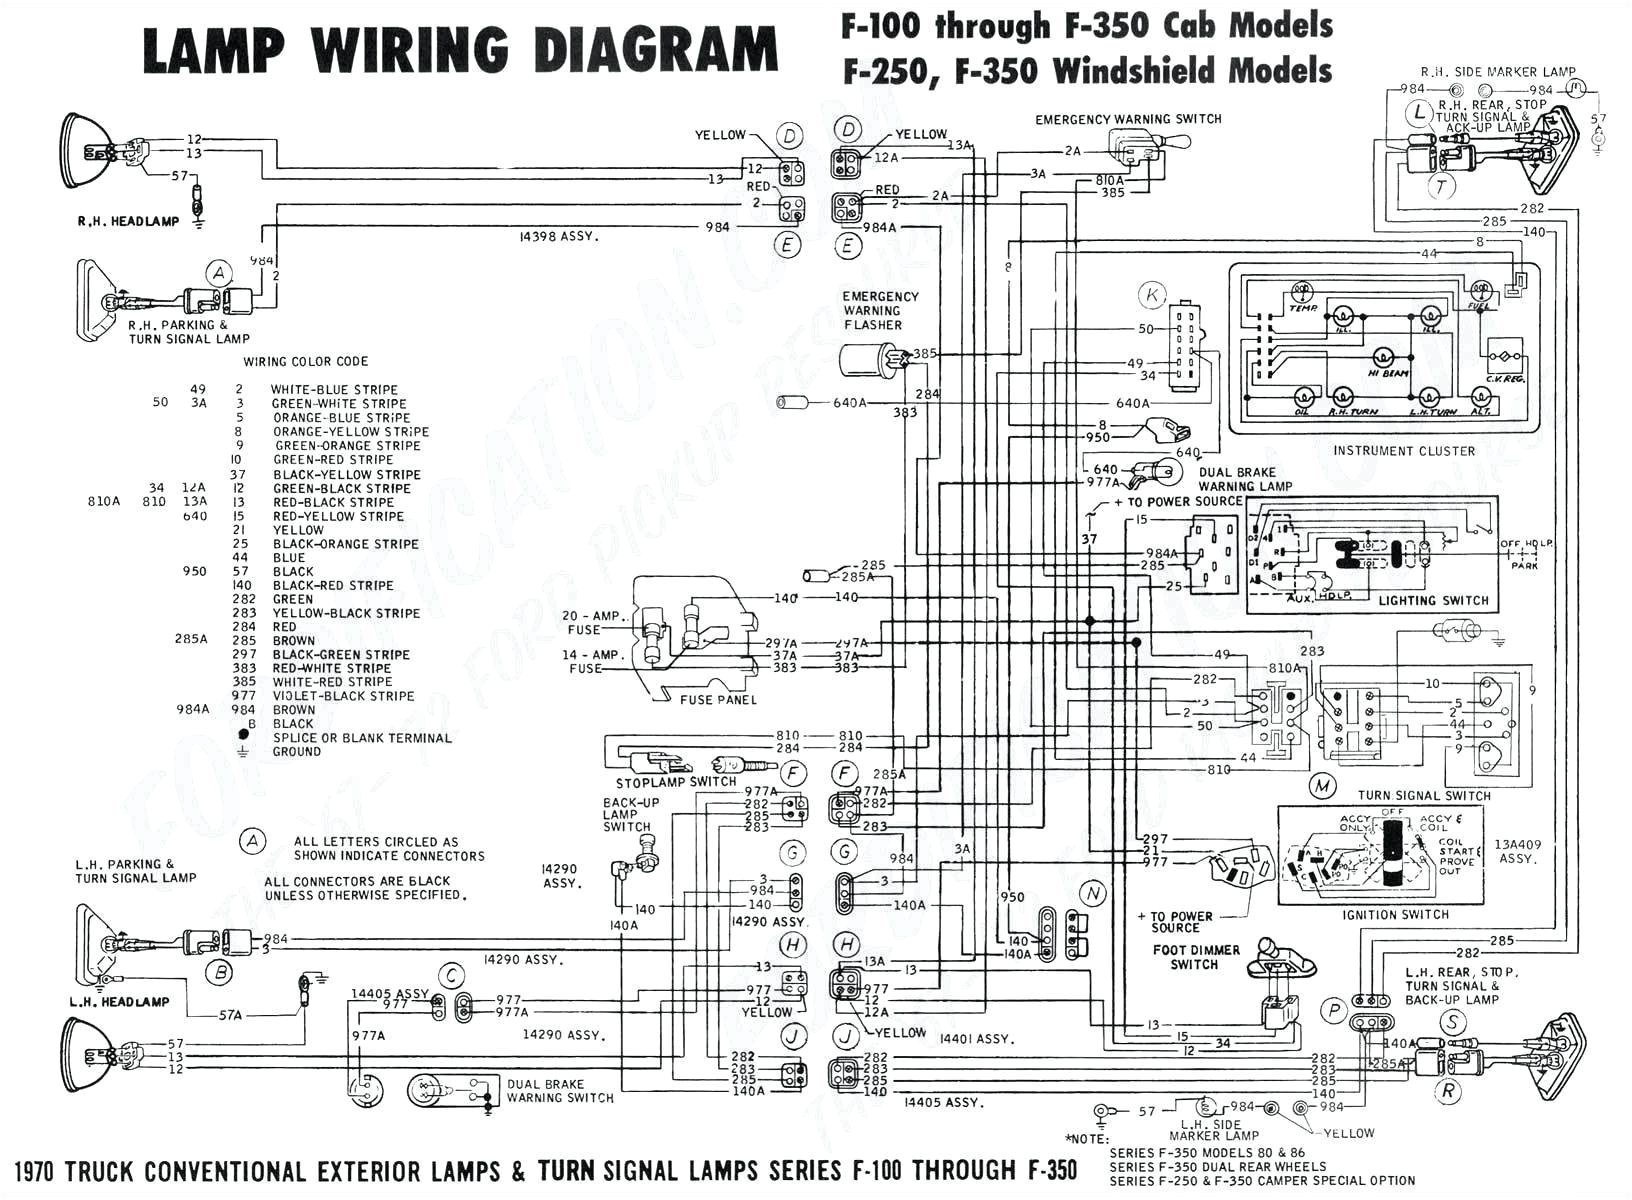 download example honeywell manual thermostat wiring diagram jpg